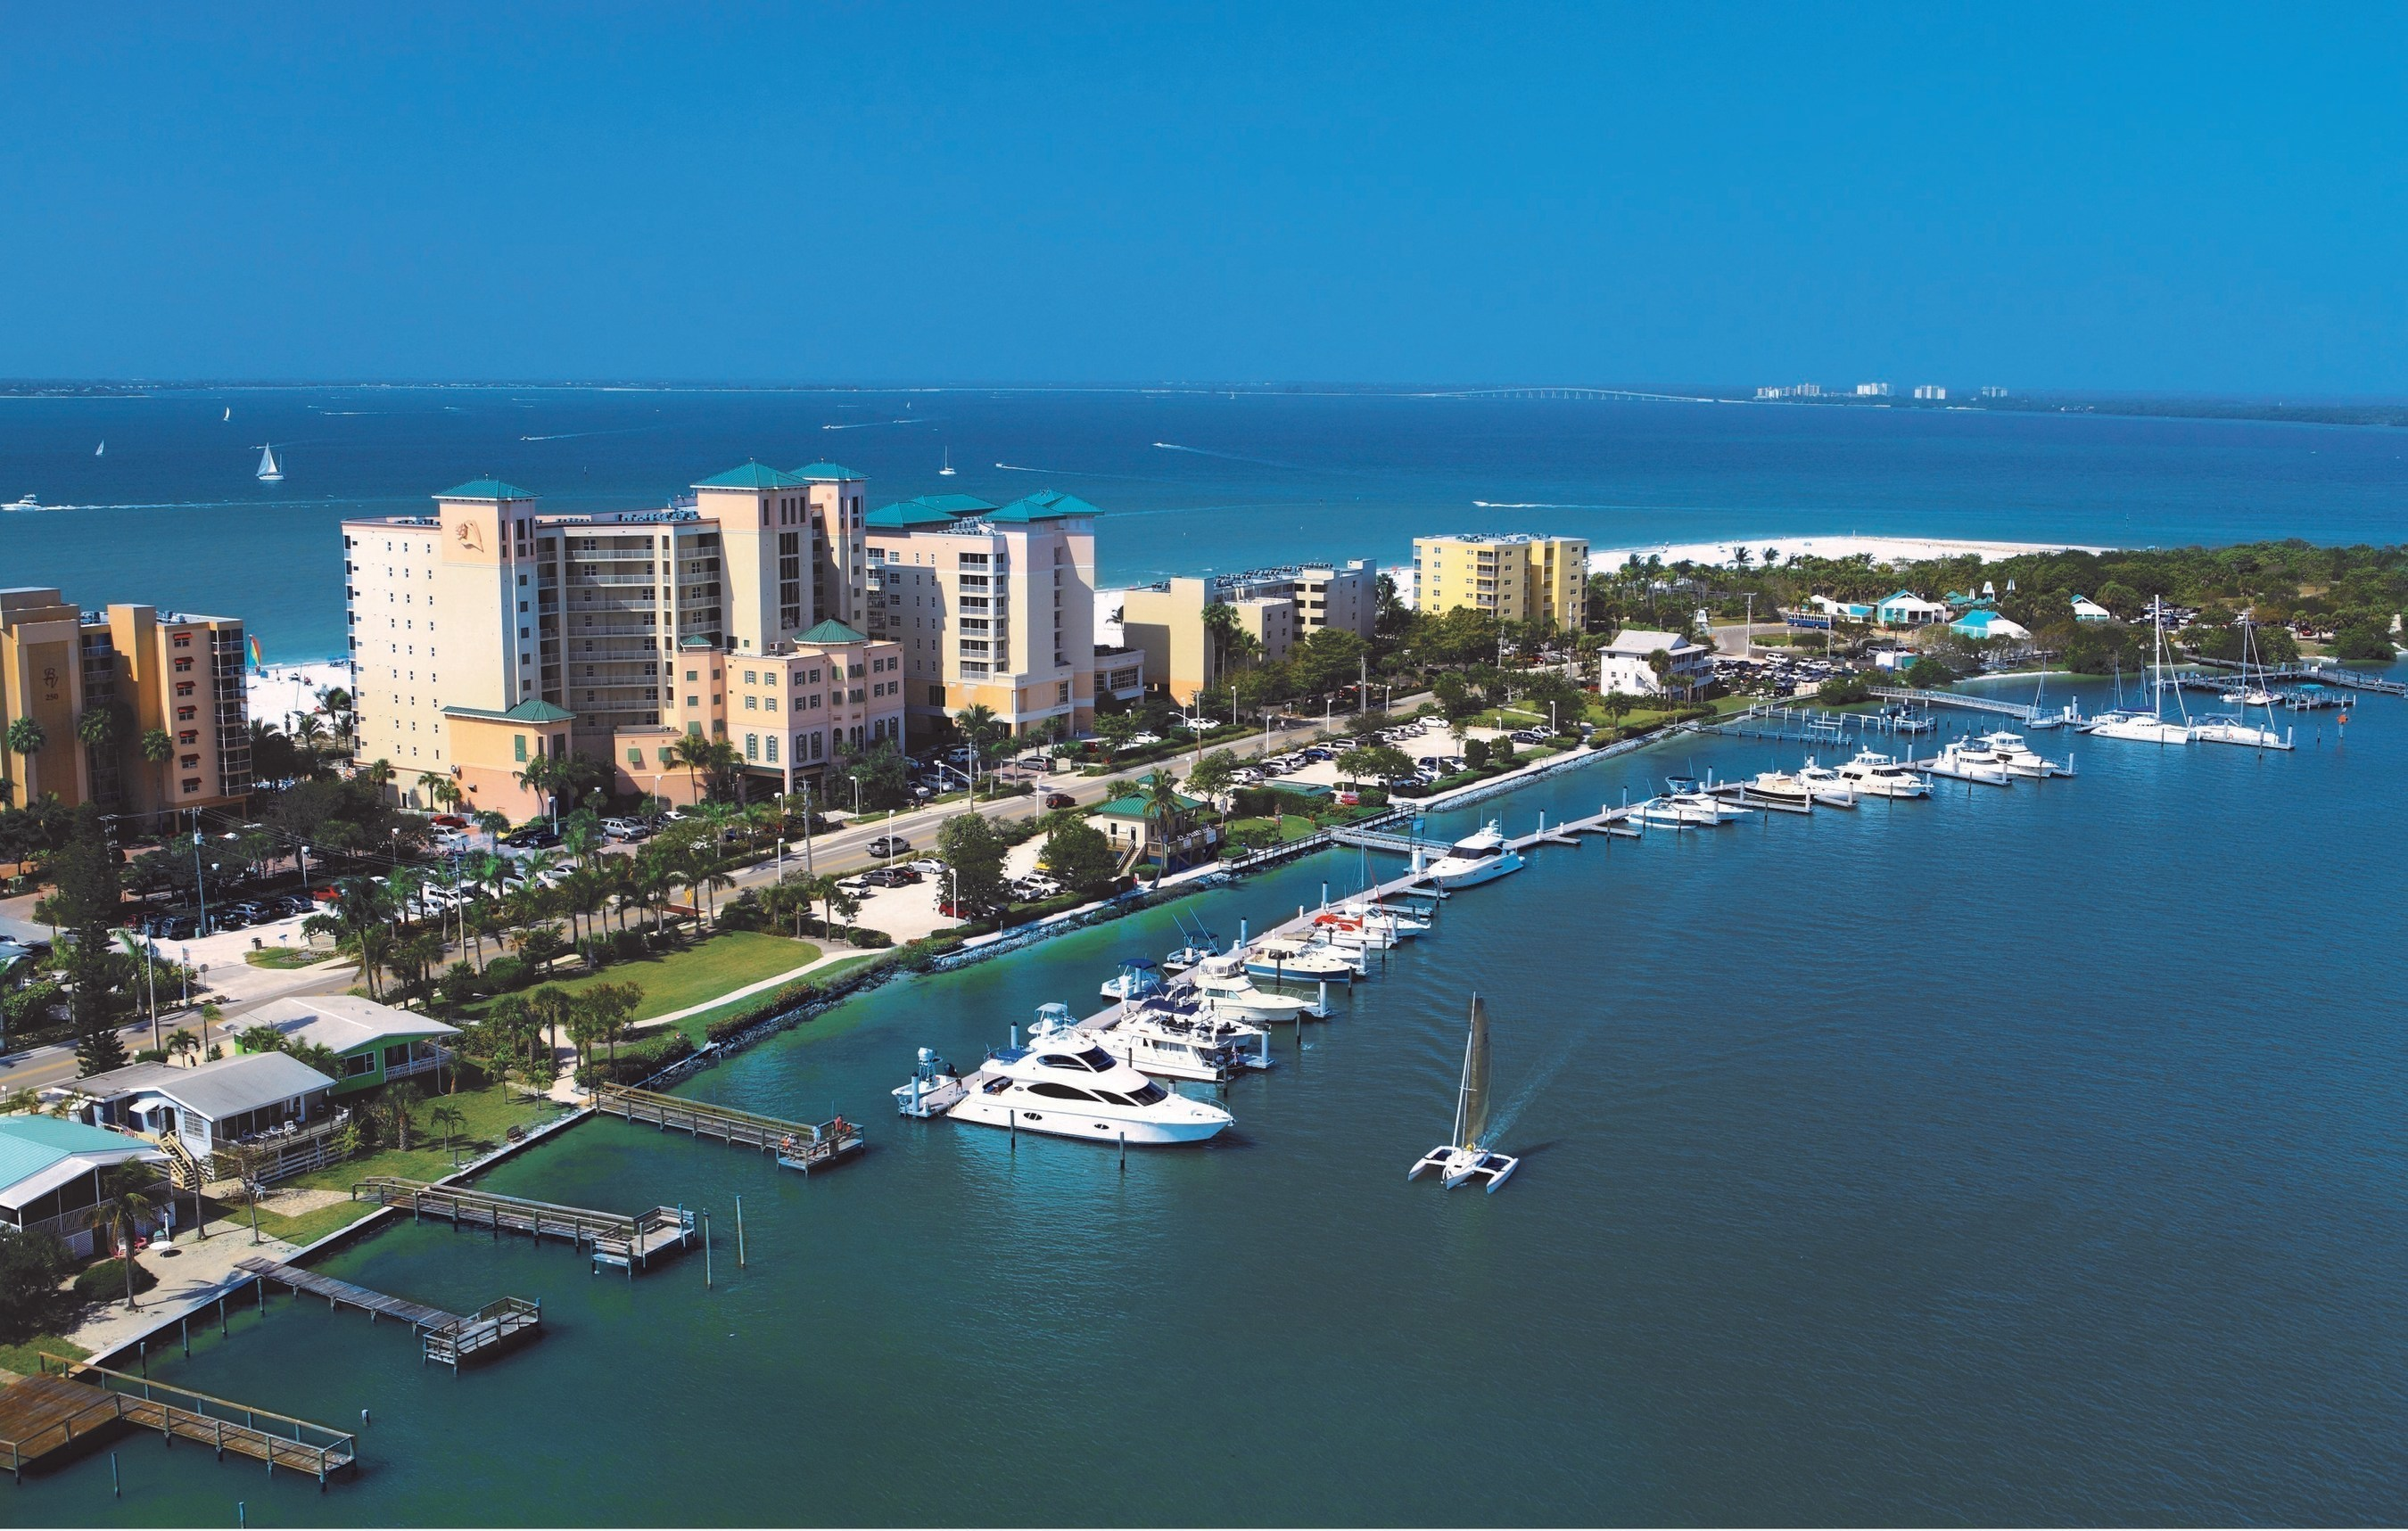 Pink Shell Beach Resort Marina Has Been Named One Of The Top 5 U S